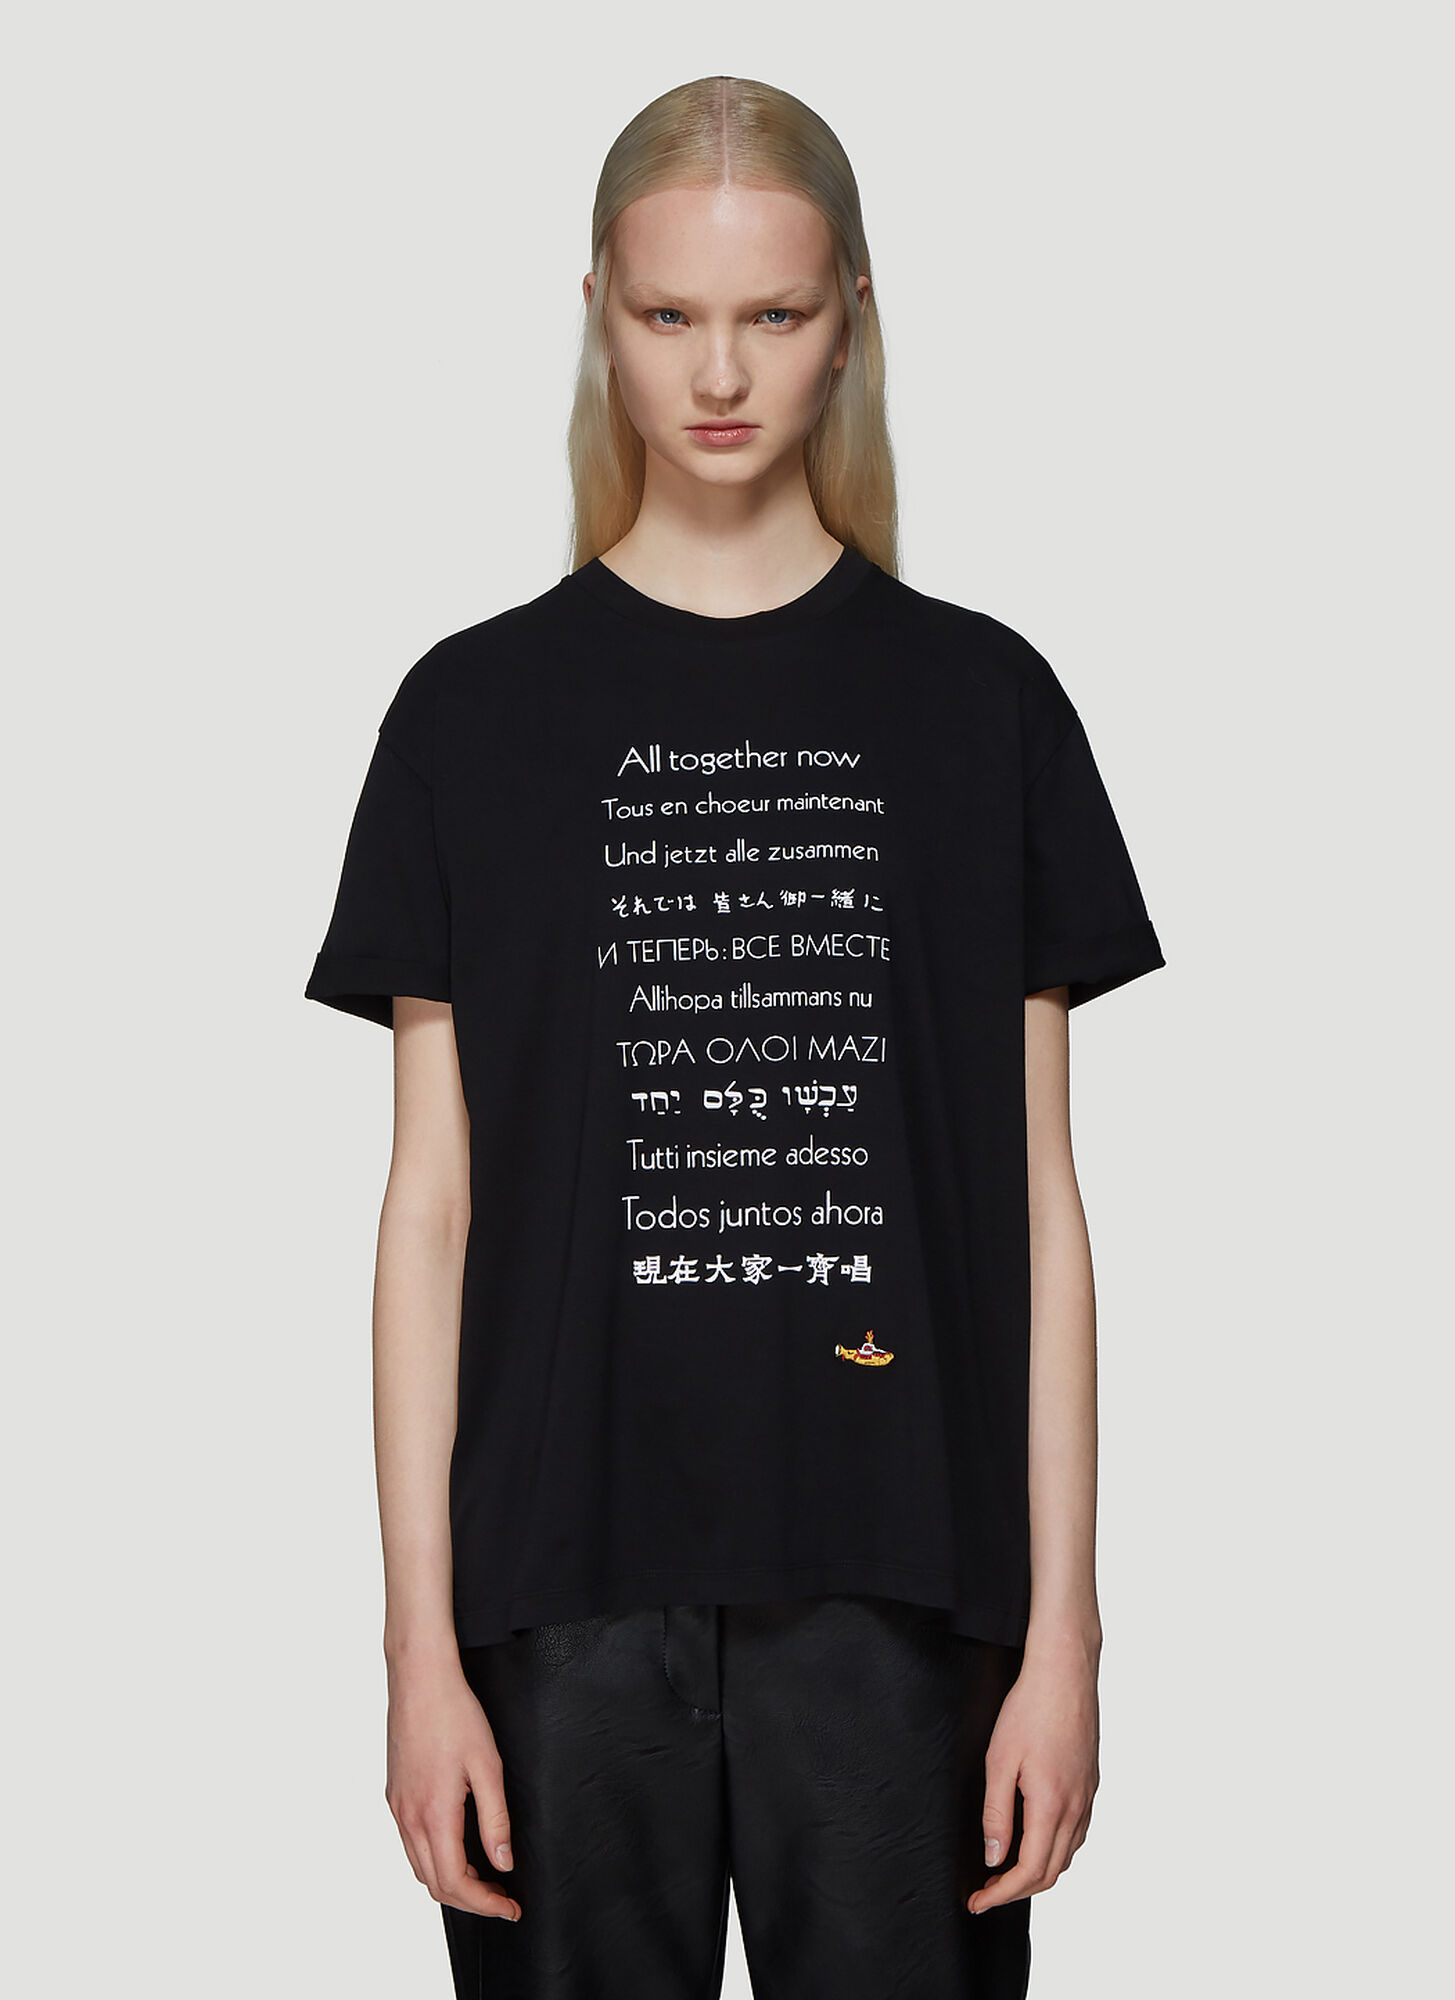 Stella McCartney The Beatles All Together Now T-Shirt in Black